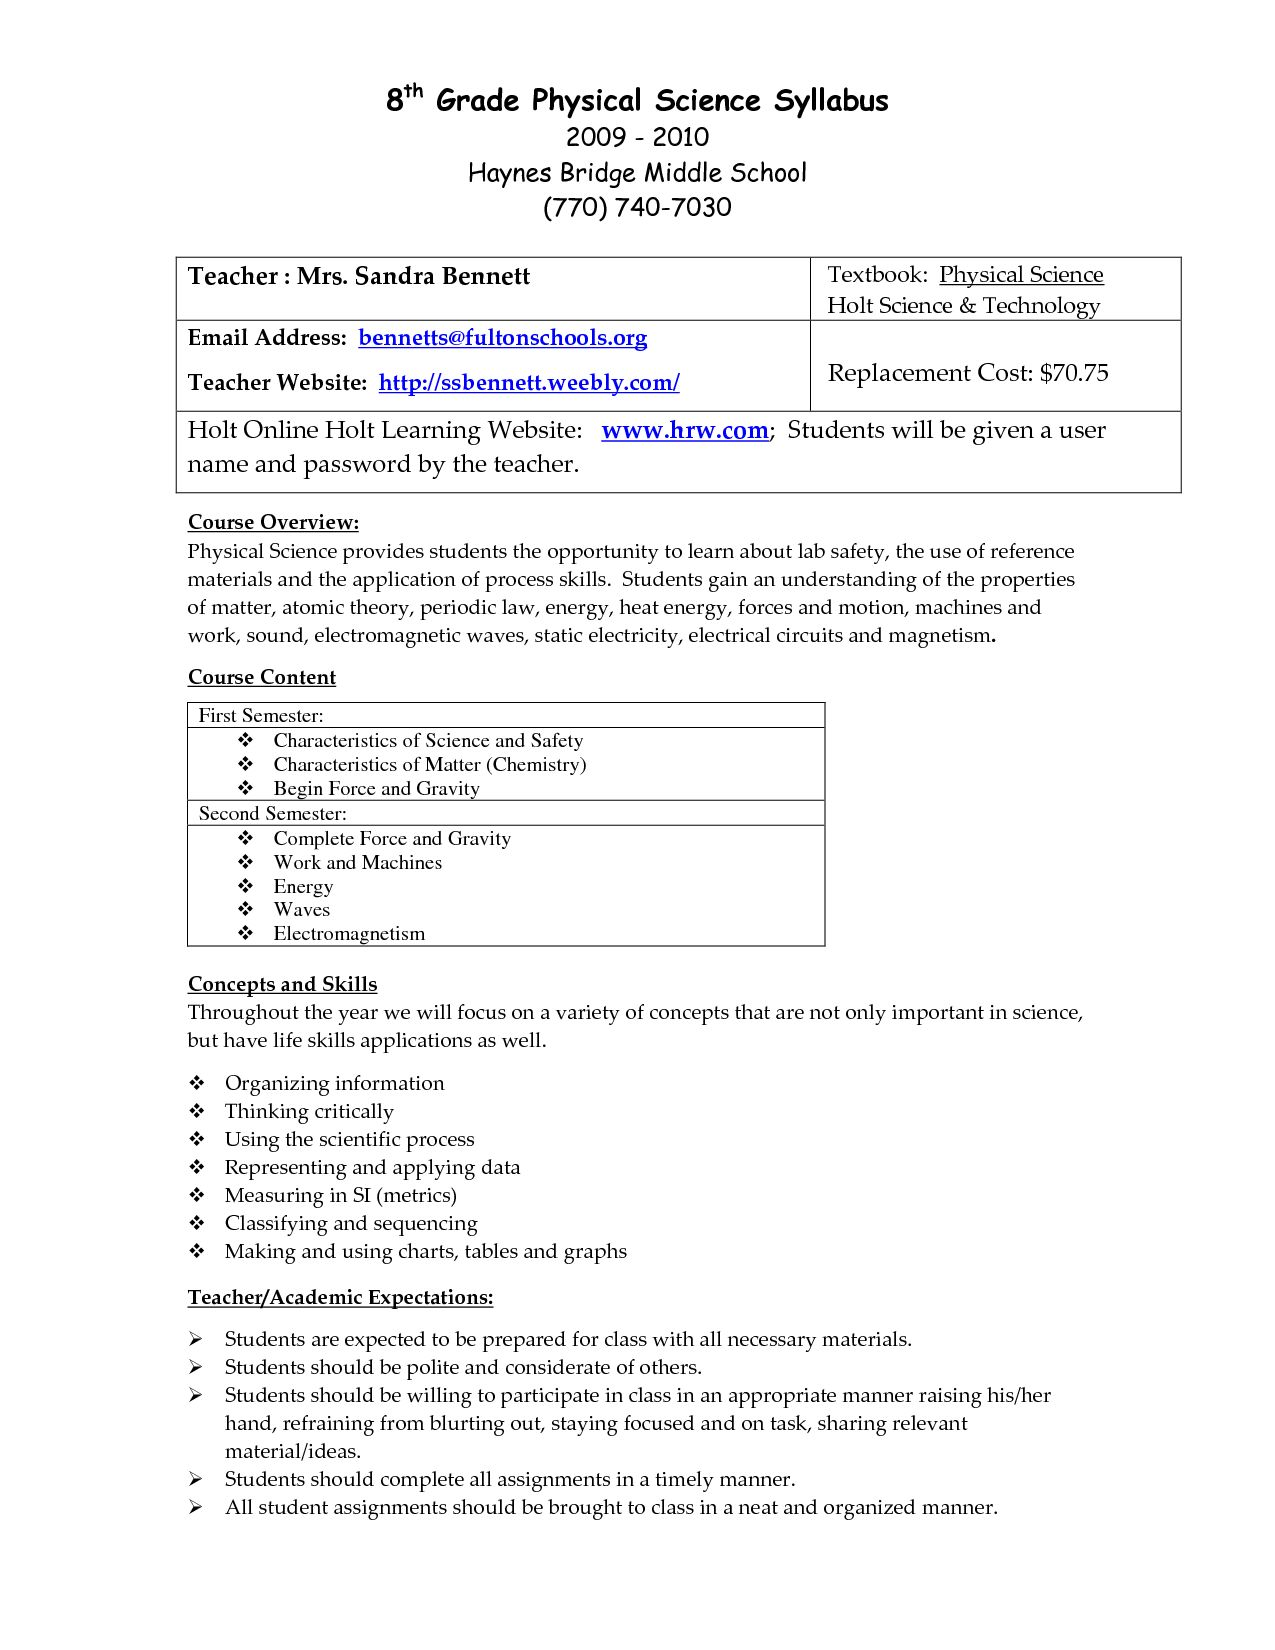 The Center For Applied Research In Education Worksheets